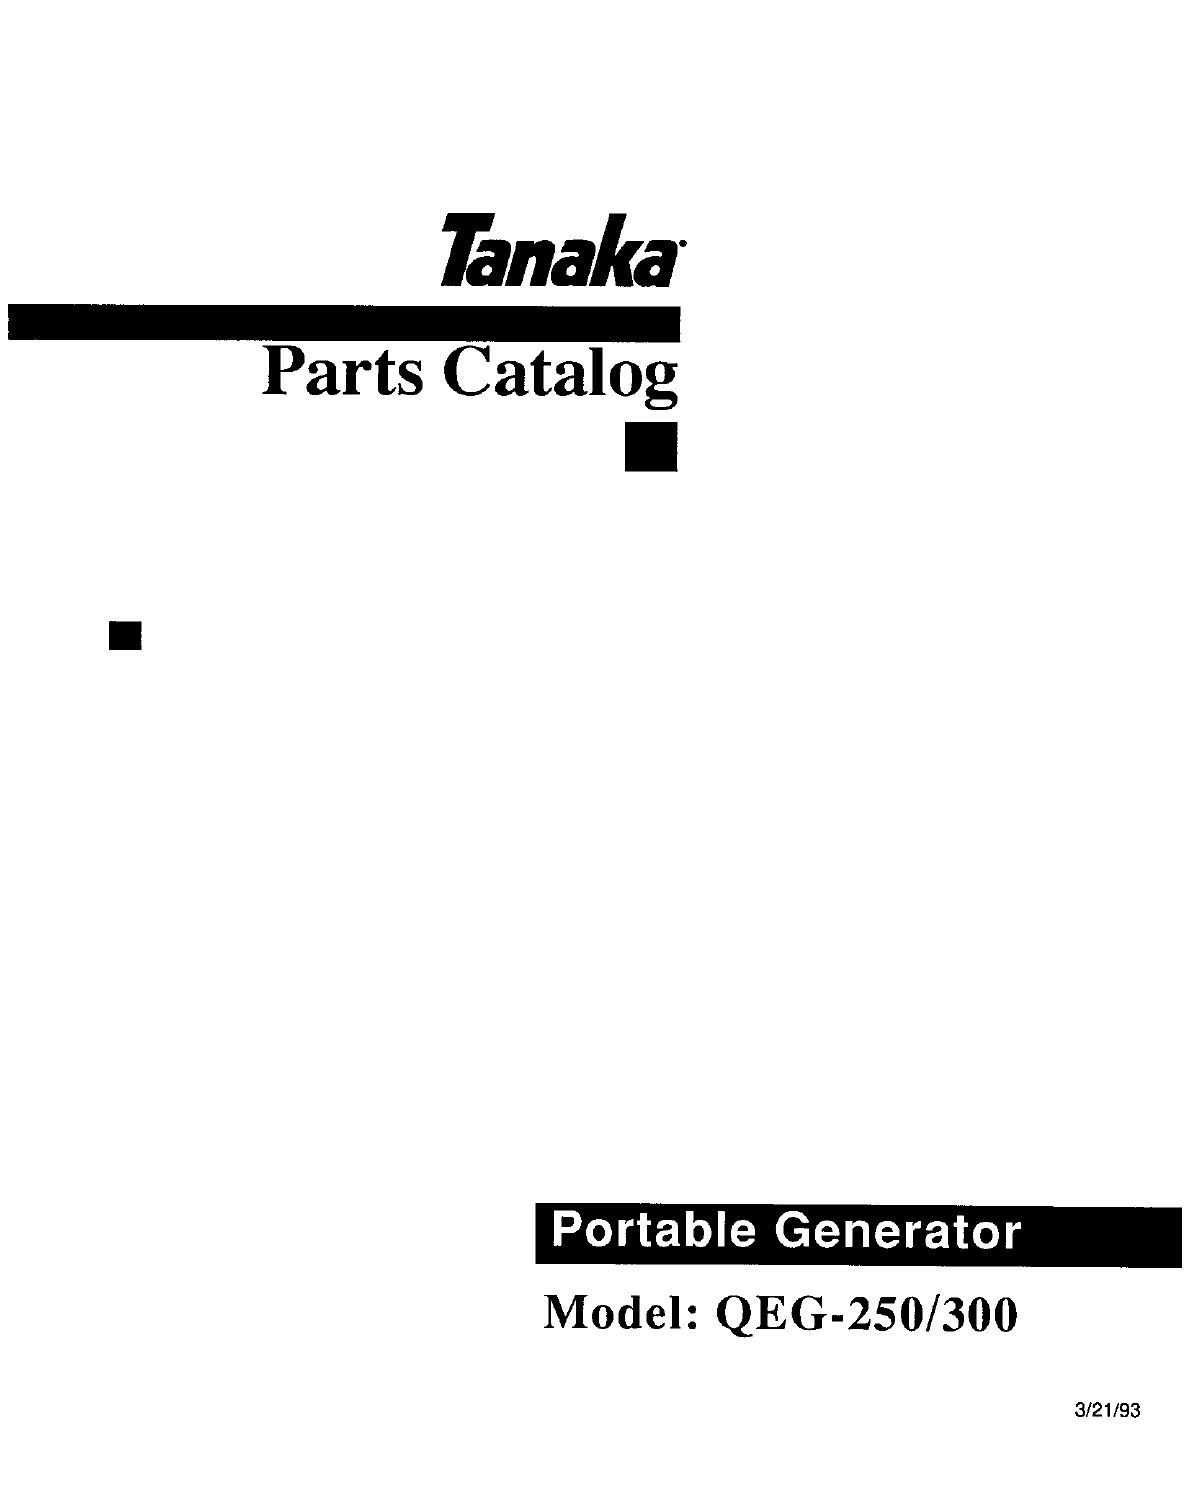 Tanaka Portable Generator QEG-250/300 User Guide